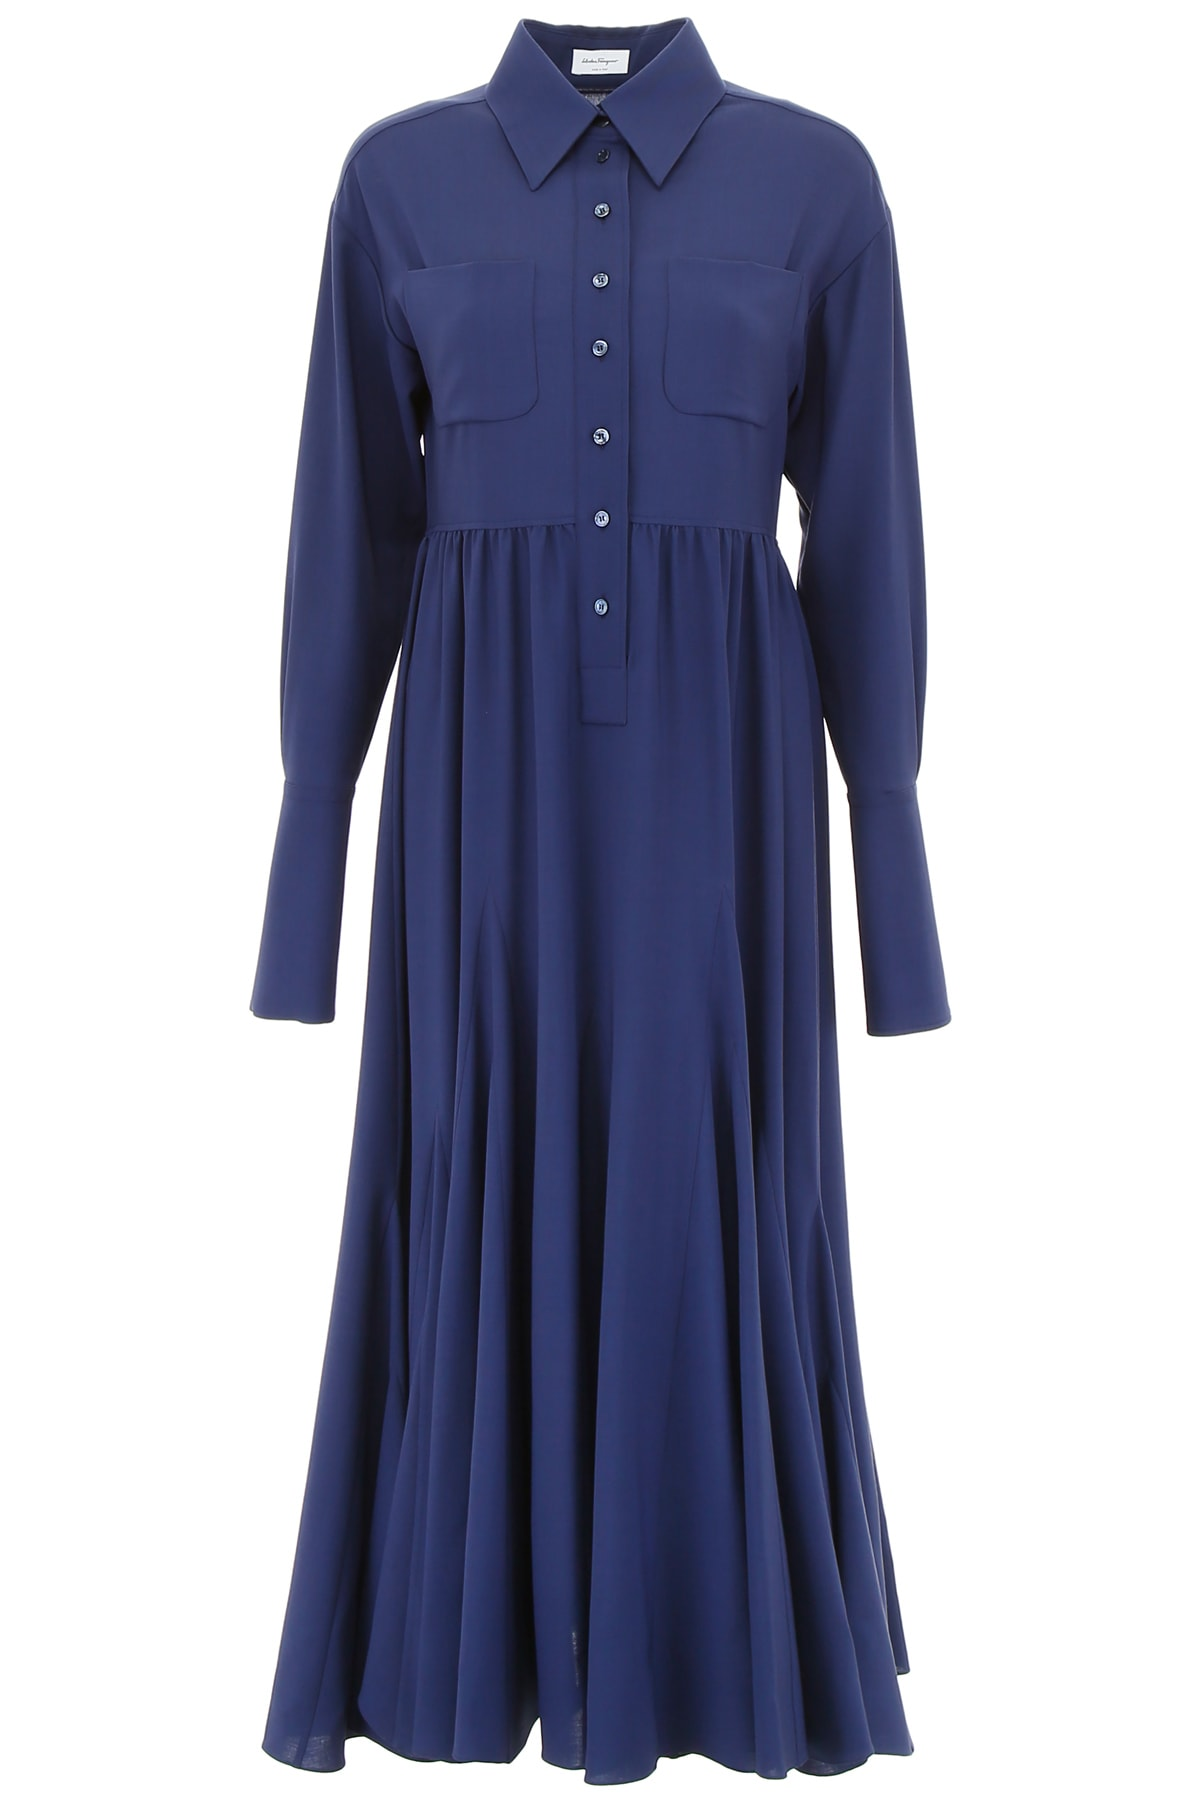 Salvatore Ferragamo Wool Dress